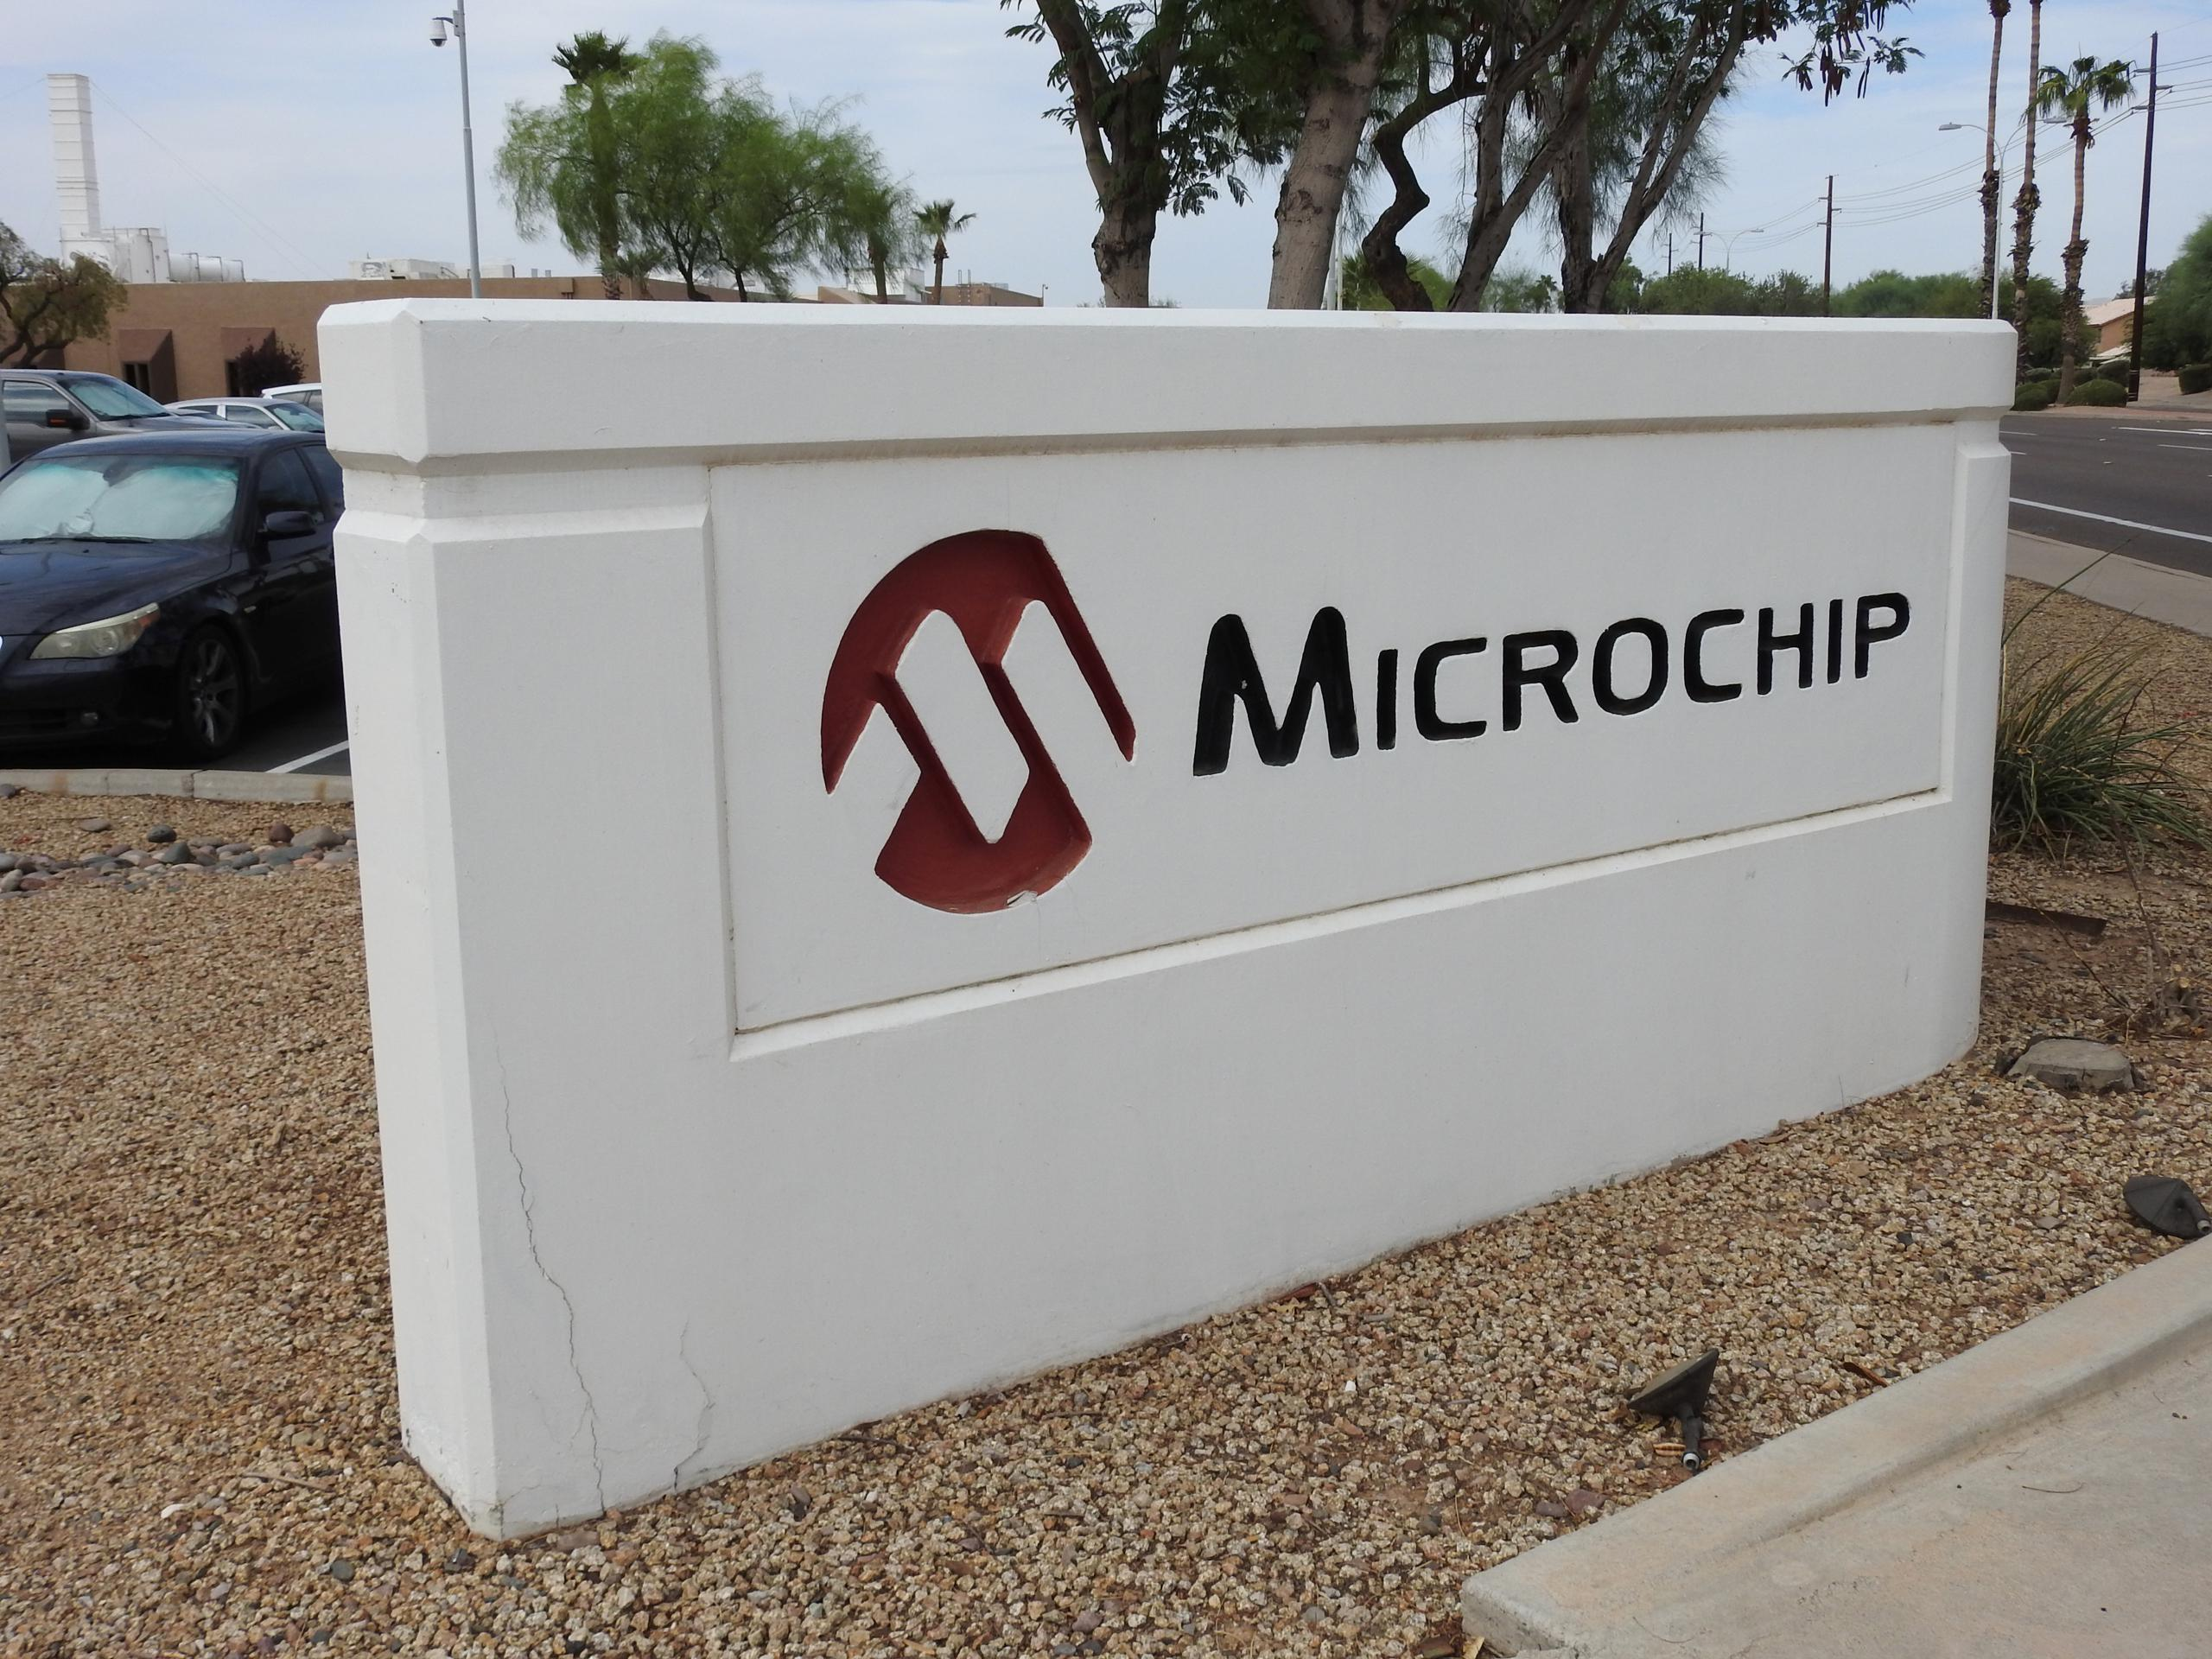 Entrance to Microchip's corporate headquarters in Chandler, Arizona.